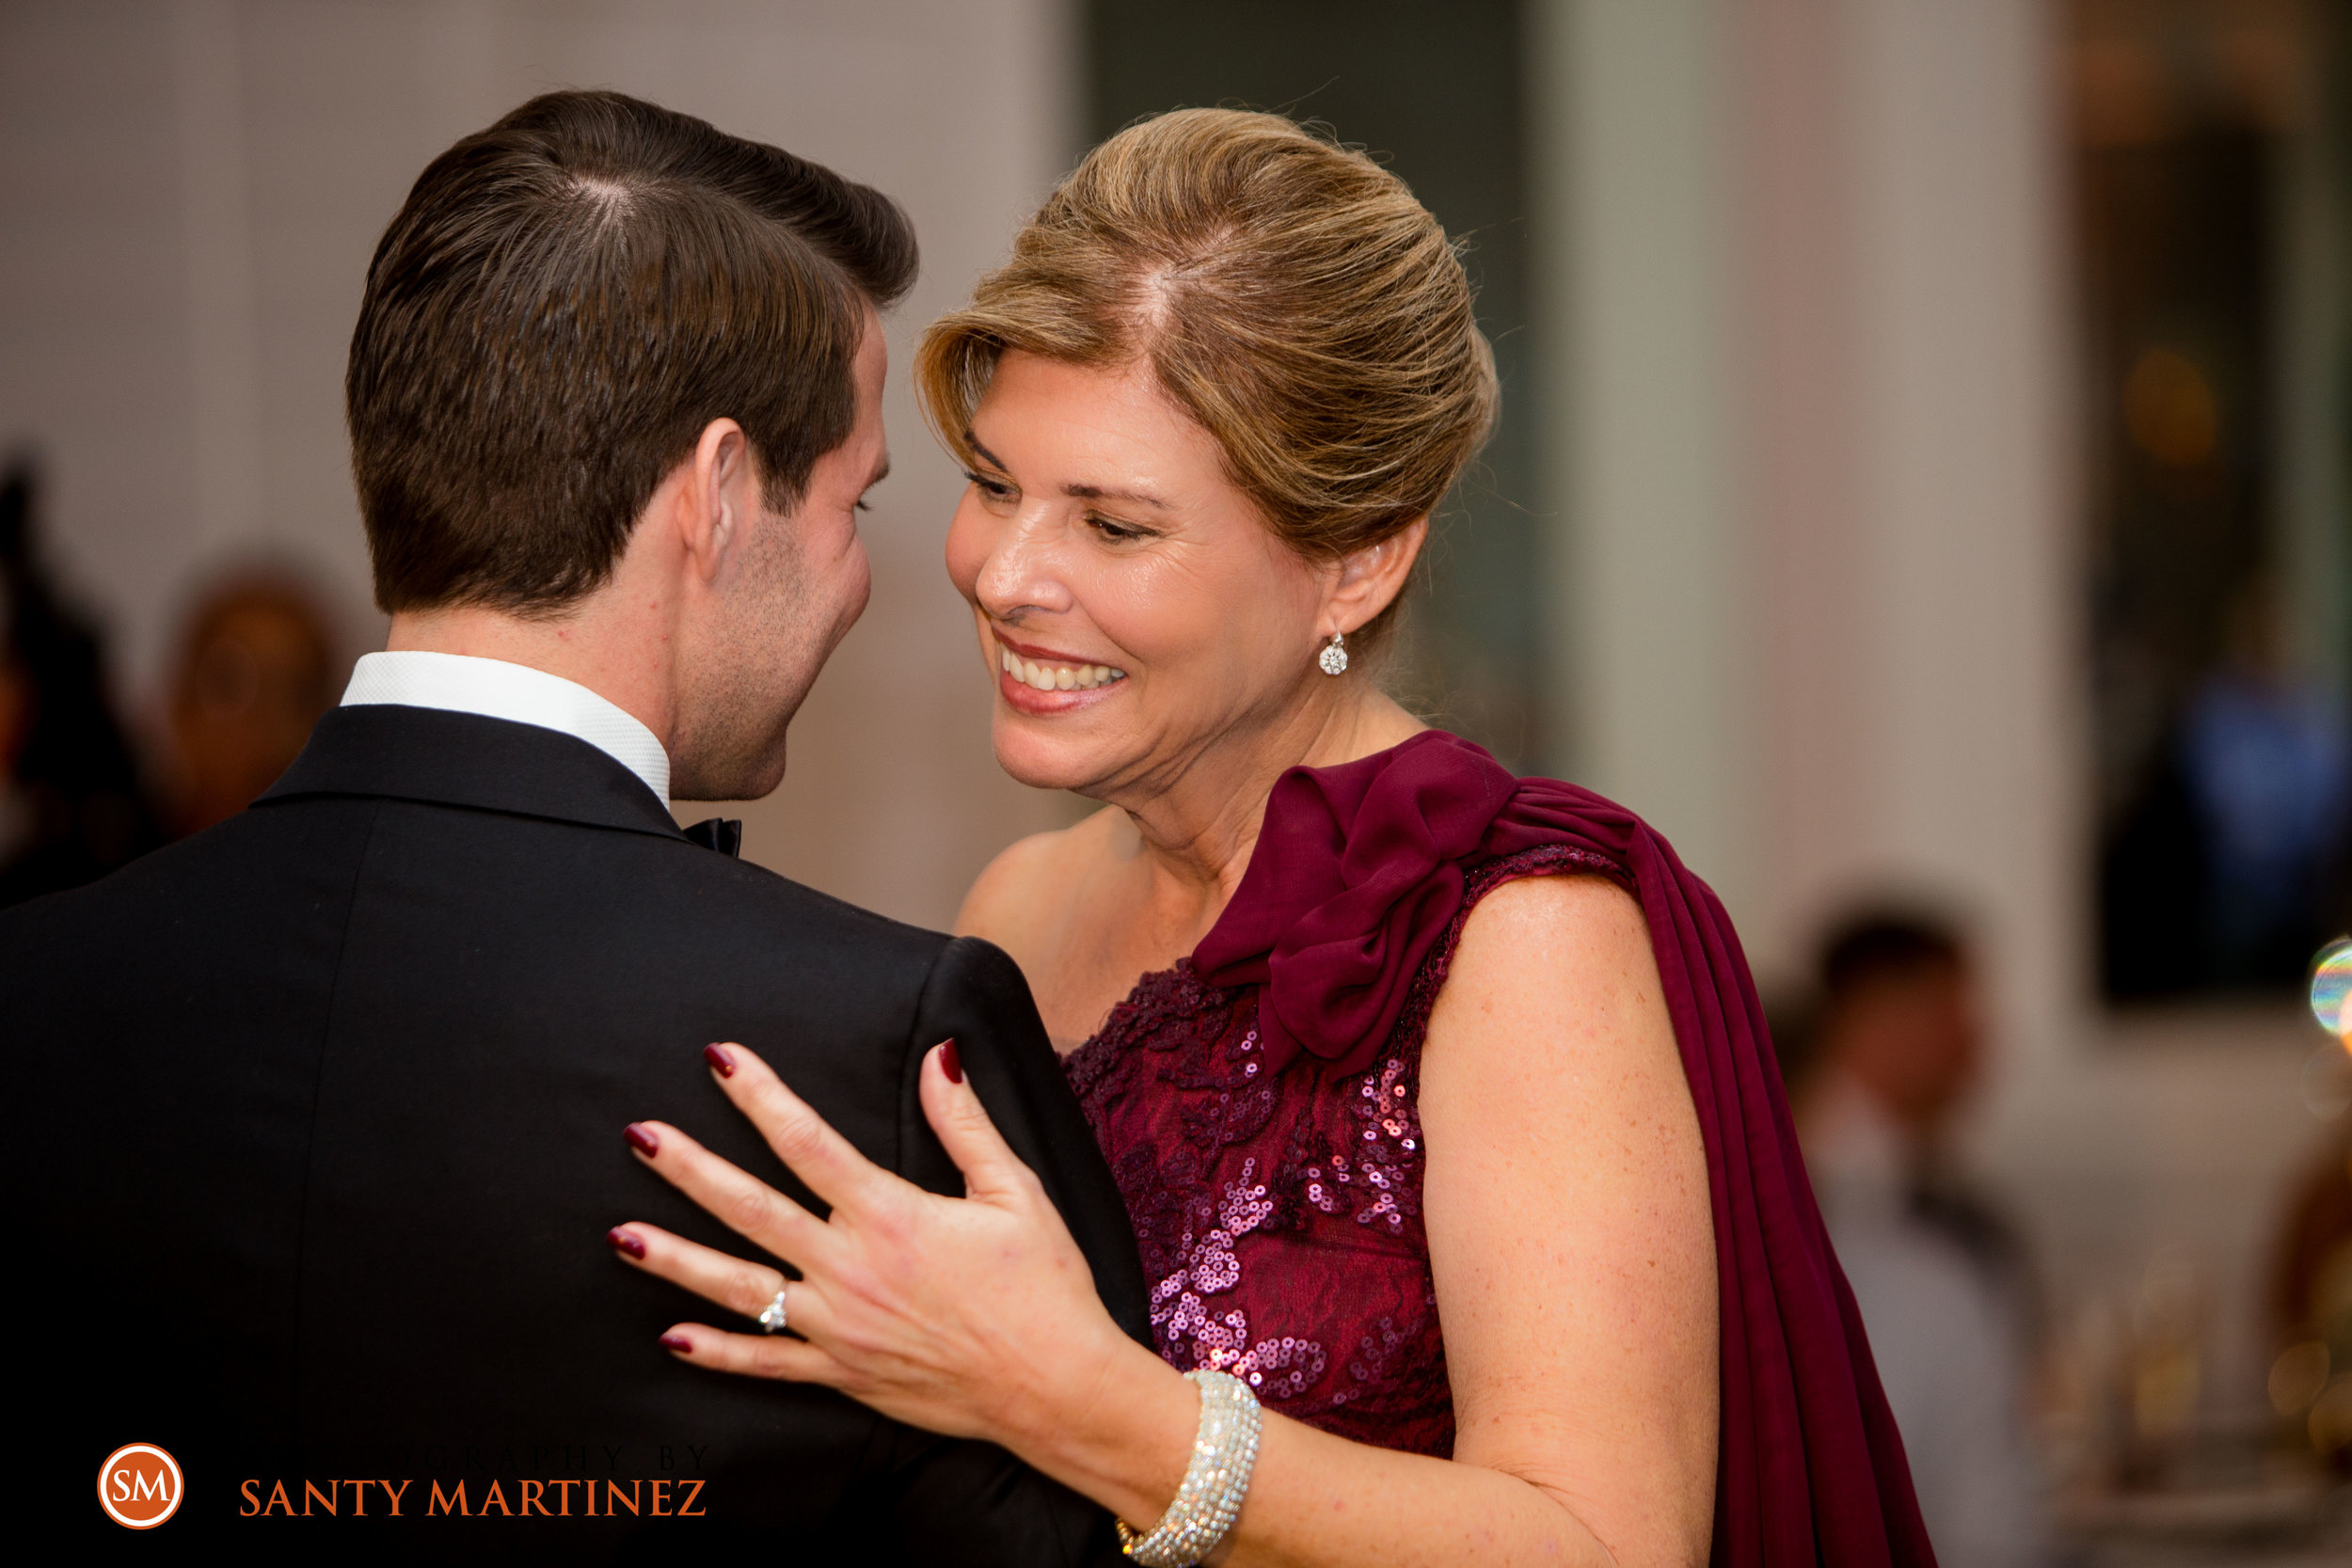 Miami Wedding Photographer - Santy Martinez -36.jpg